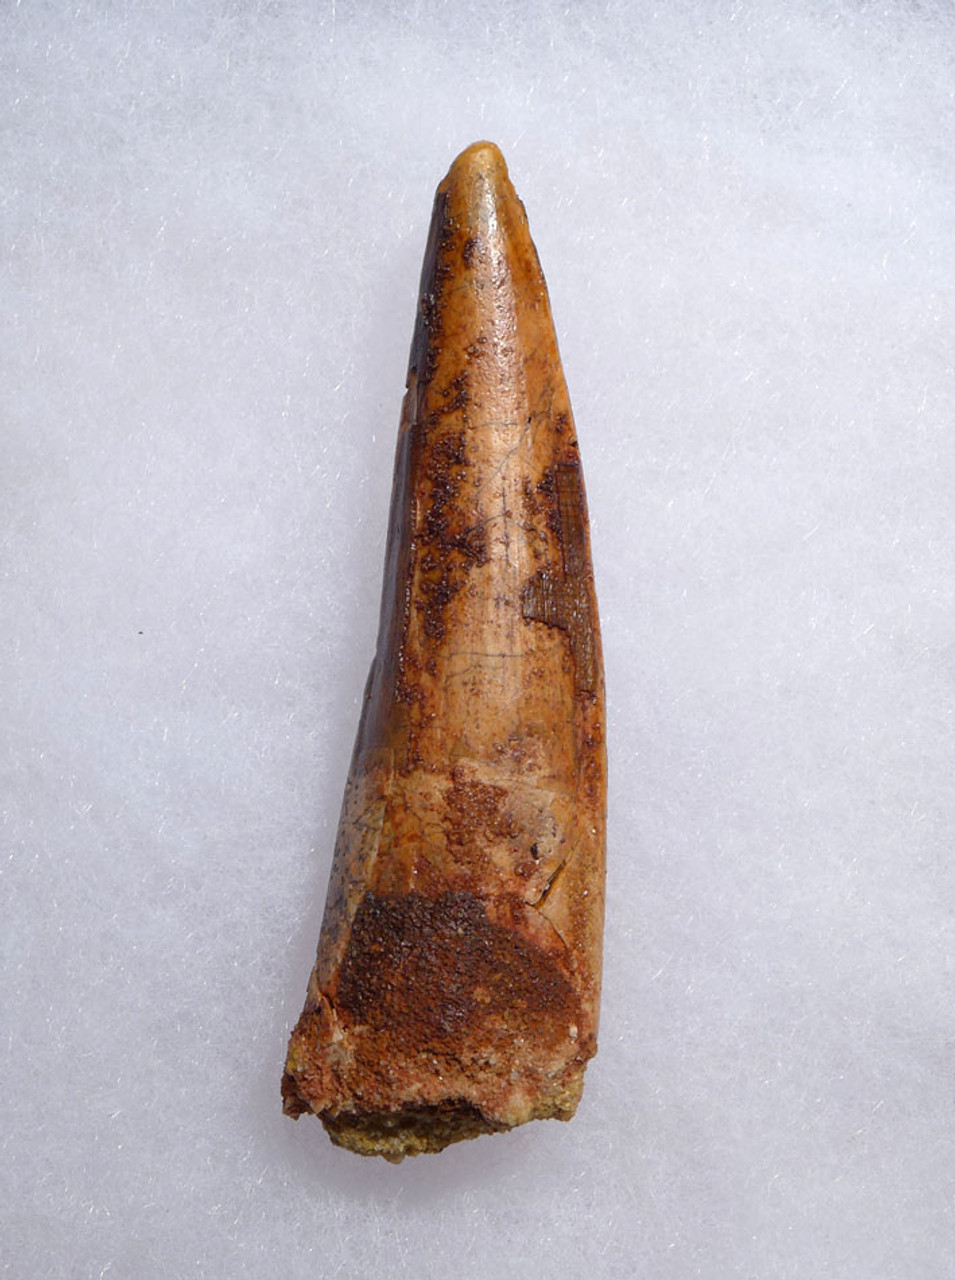 BEAUTIFUL SHARP TIPPED 3 INCH SPINOSAURUS DINOSAUR FOSSIL TOOTH *DT5-452